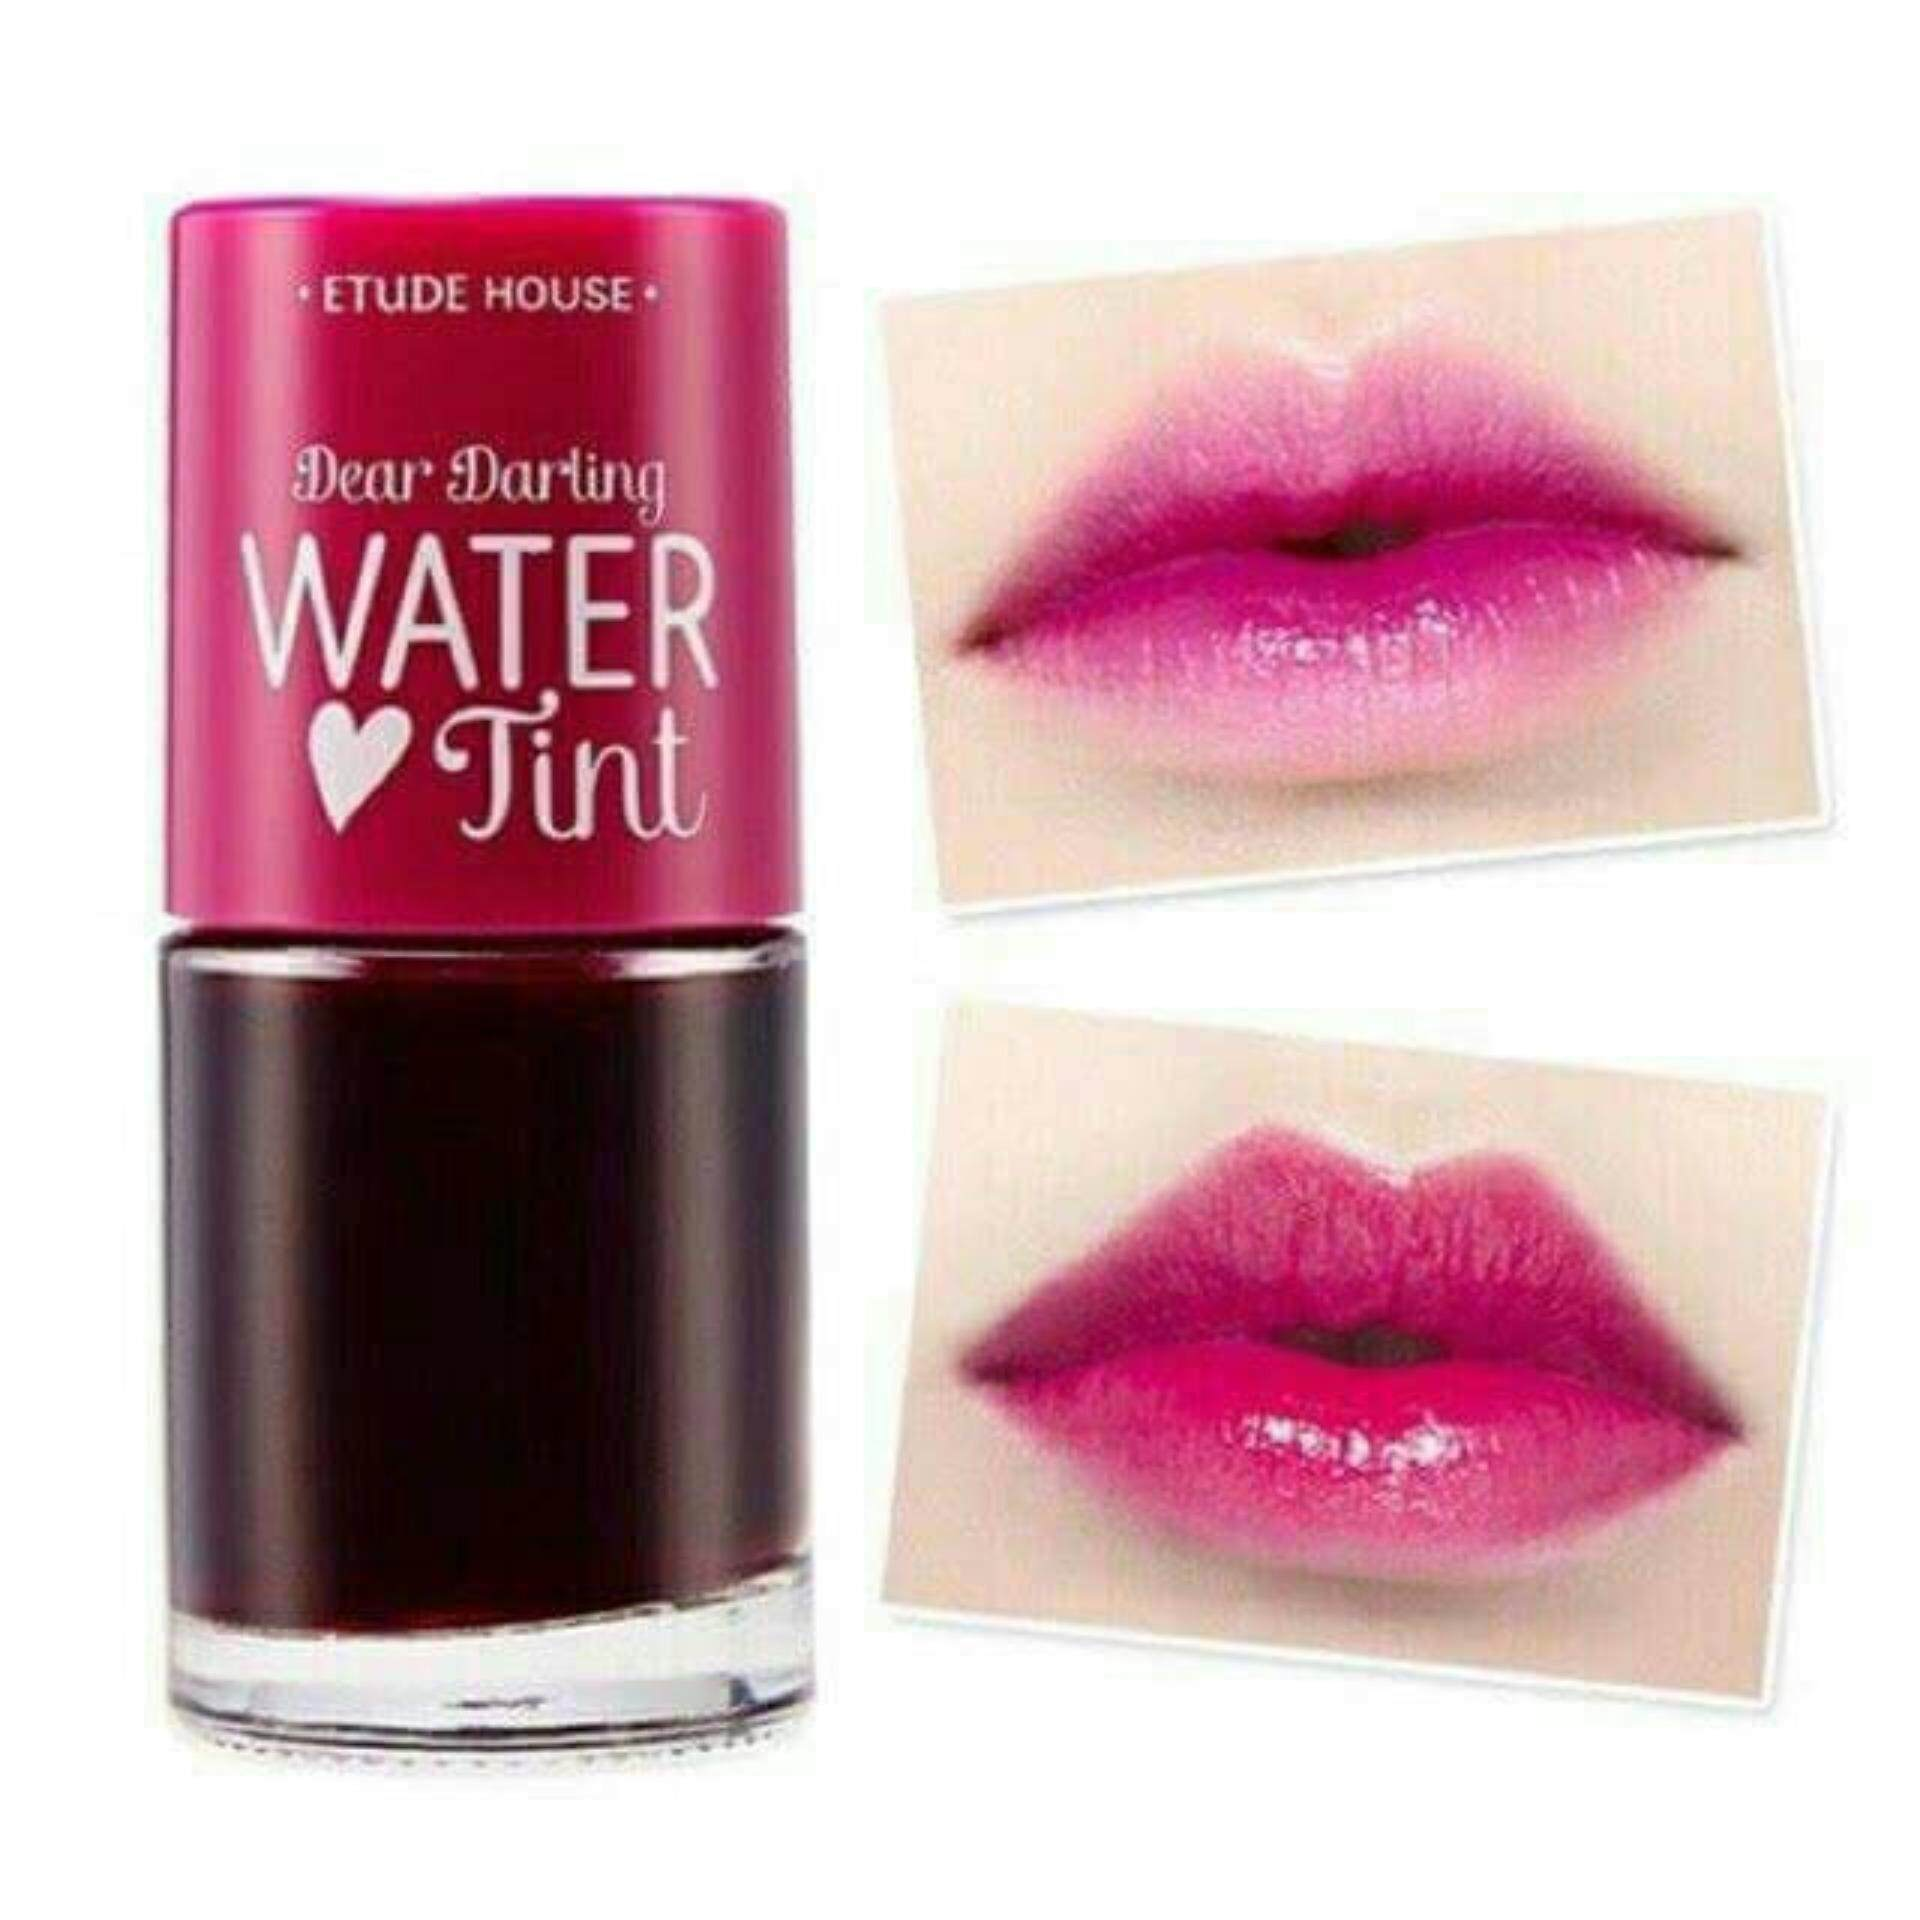 Etude House Dear Darling Water Tint # 1 Strawberry Tint